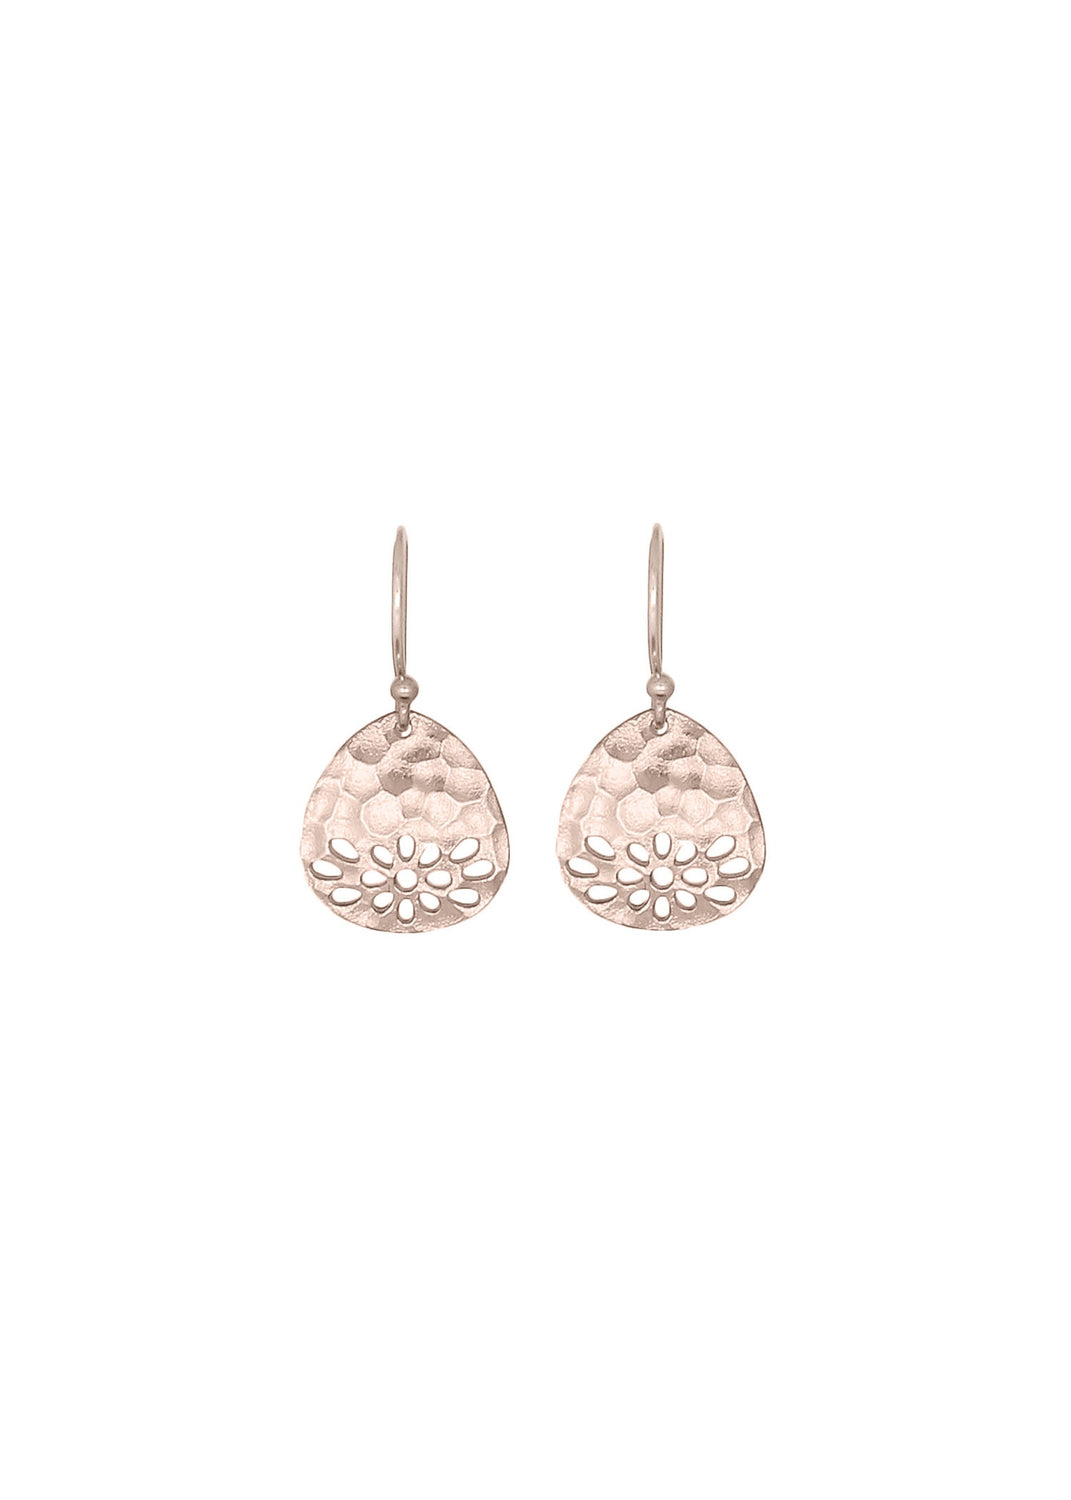 Nicole Fendel Delilah Small Earrings